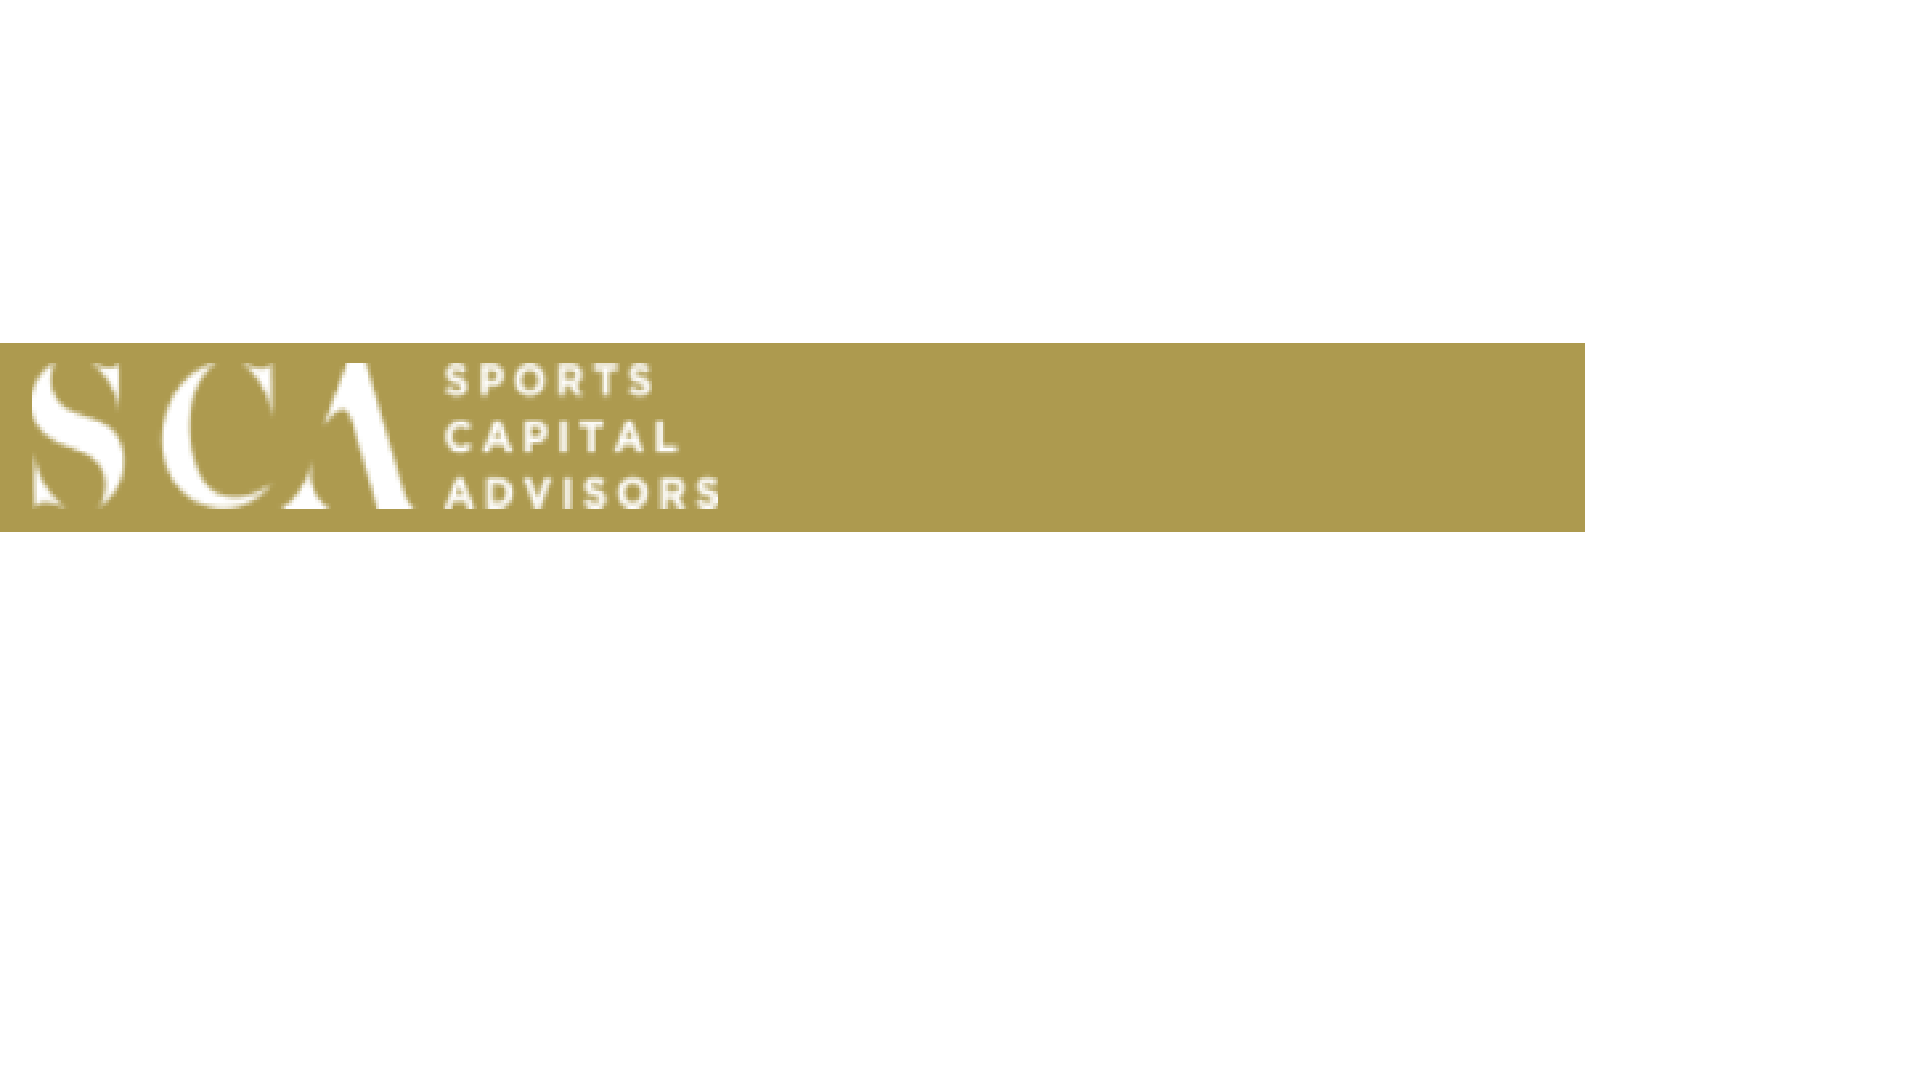 Sports Capital Advisors